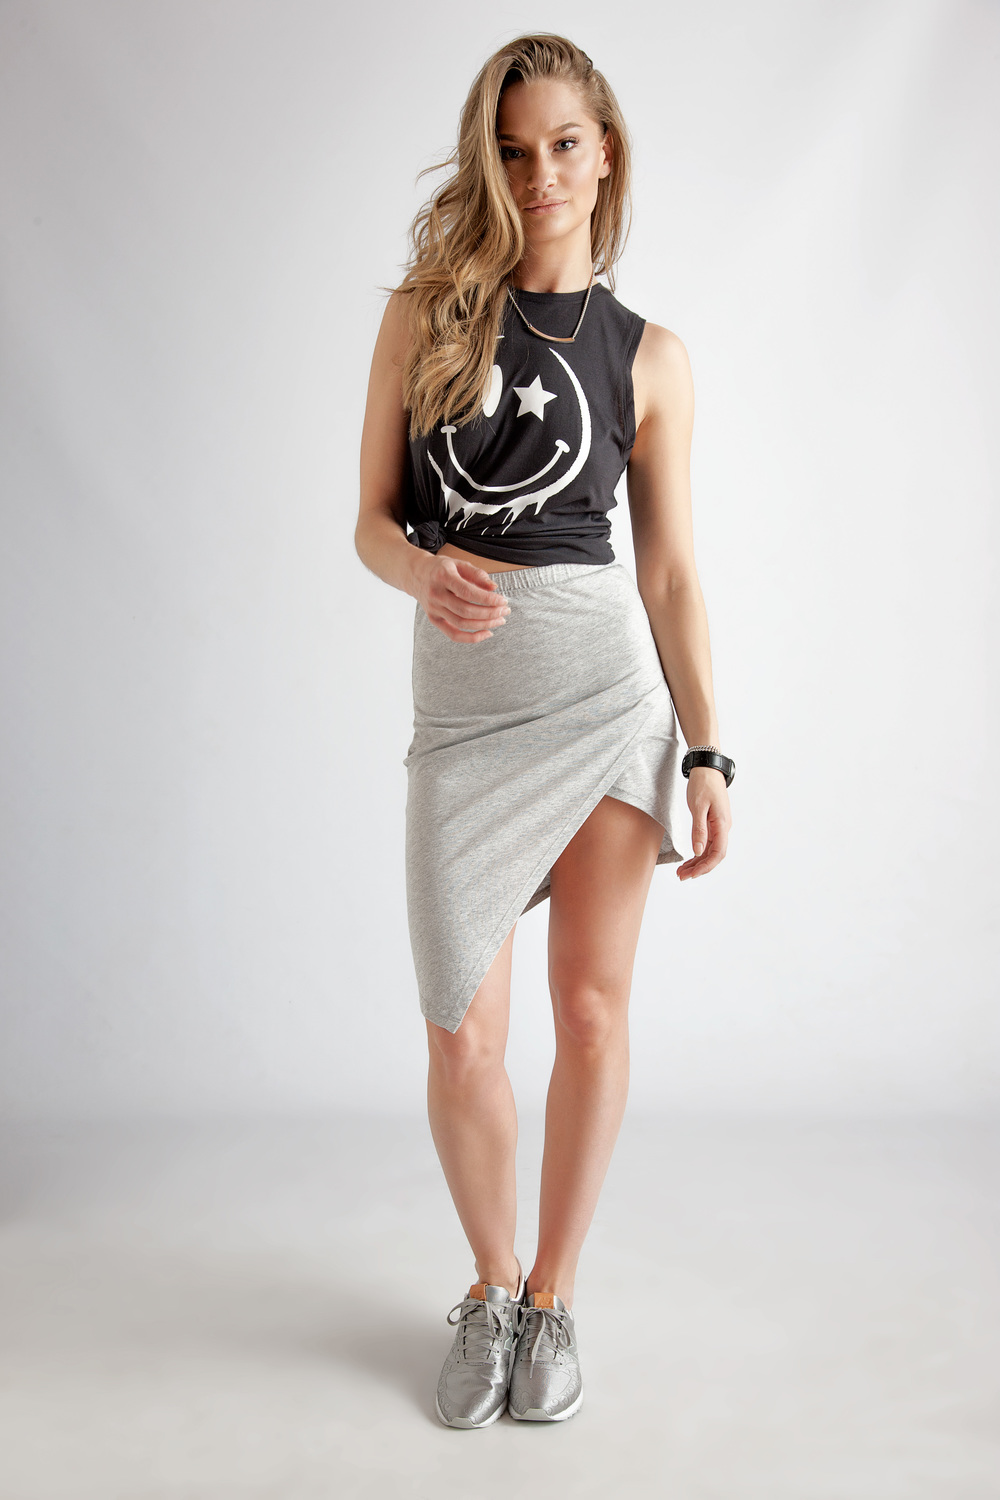 Tank by South Parade $80 | Skirt by Alternative Apparel $93 | Necklace by Liel & Lentz $100 | Sneakers by New Balance $110